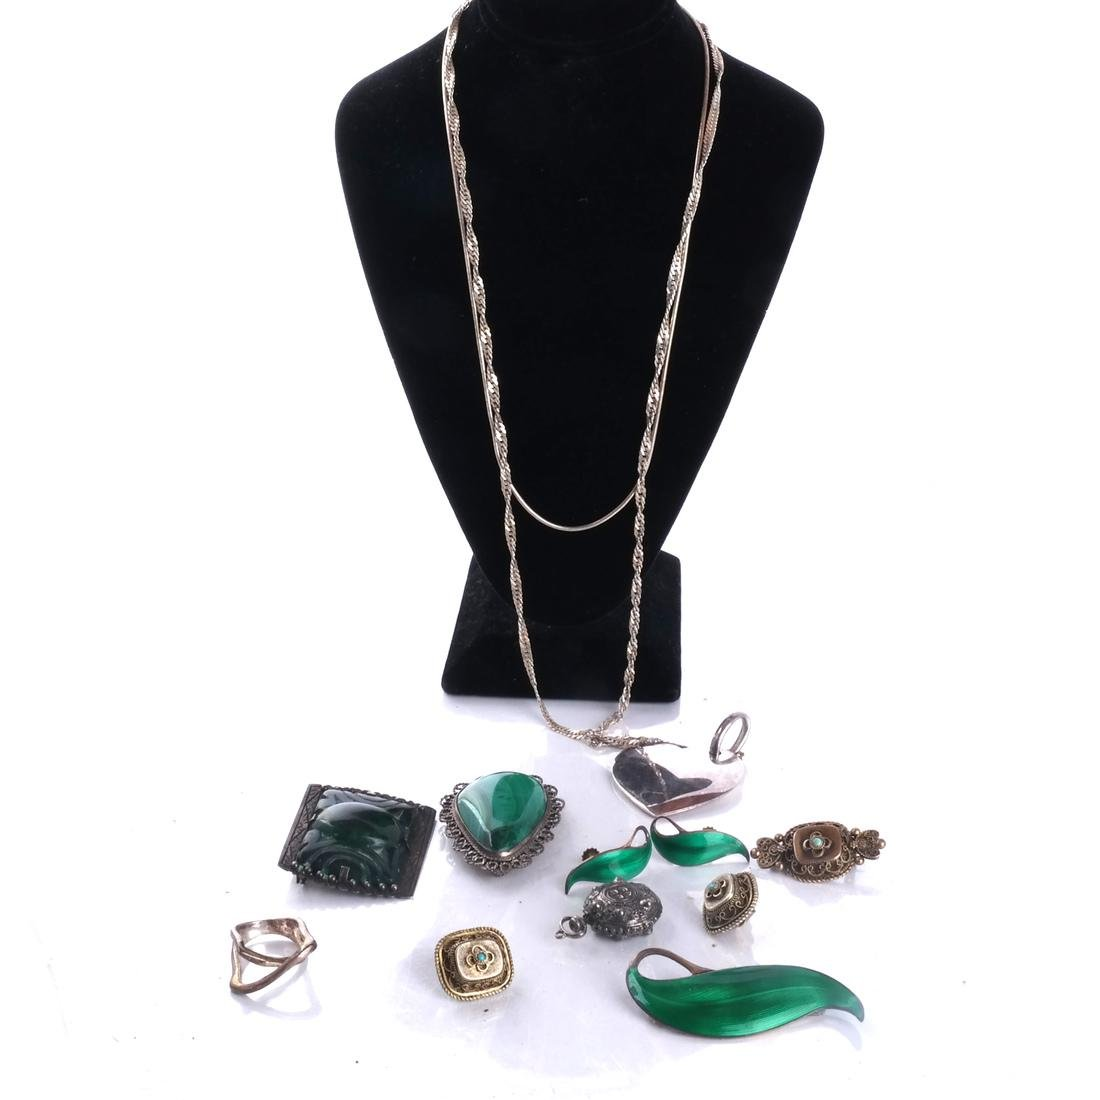 .925 Sterling Silver Norse, etc. Jewelry